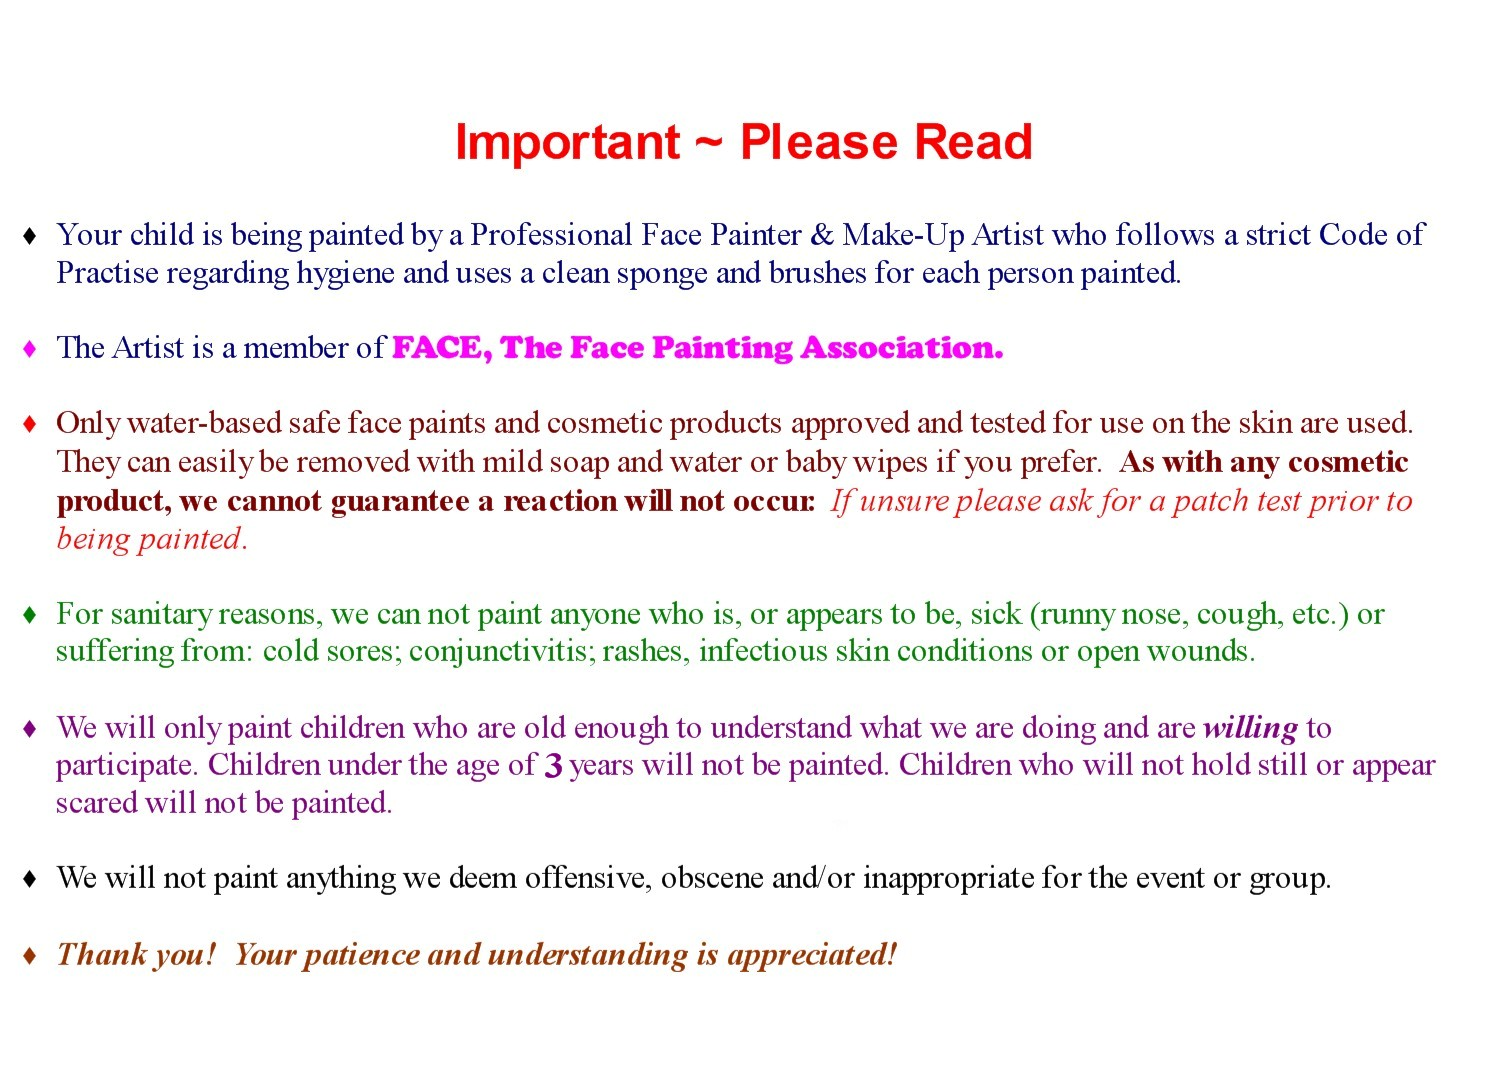 Face Painting Photo And Disclaimer Form